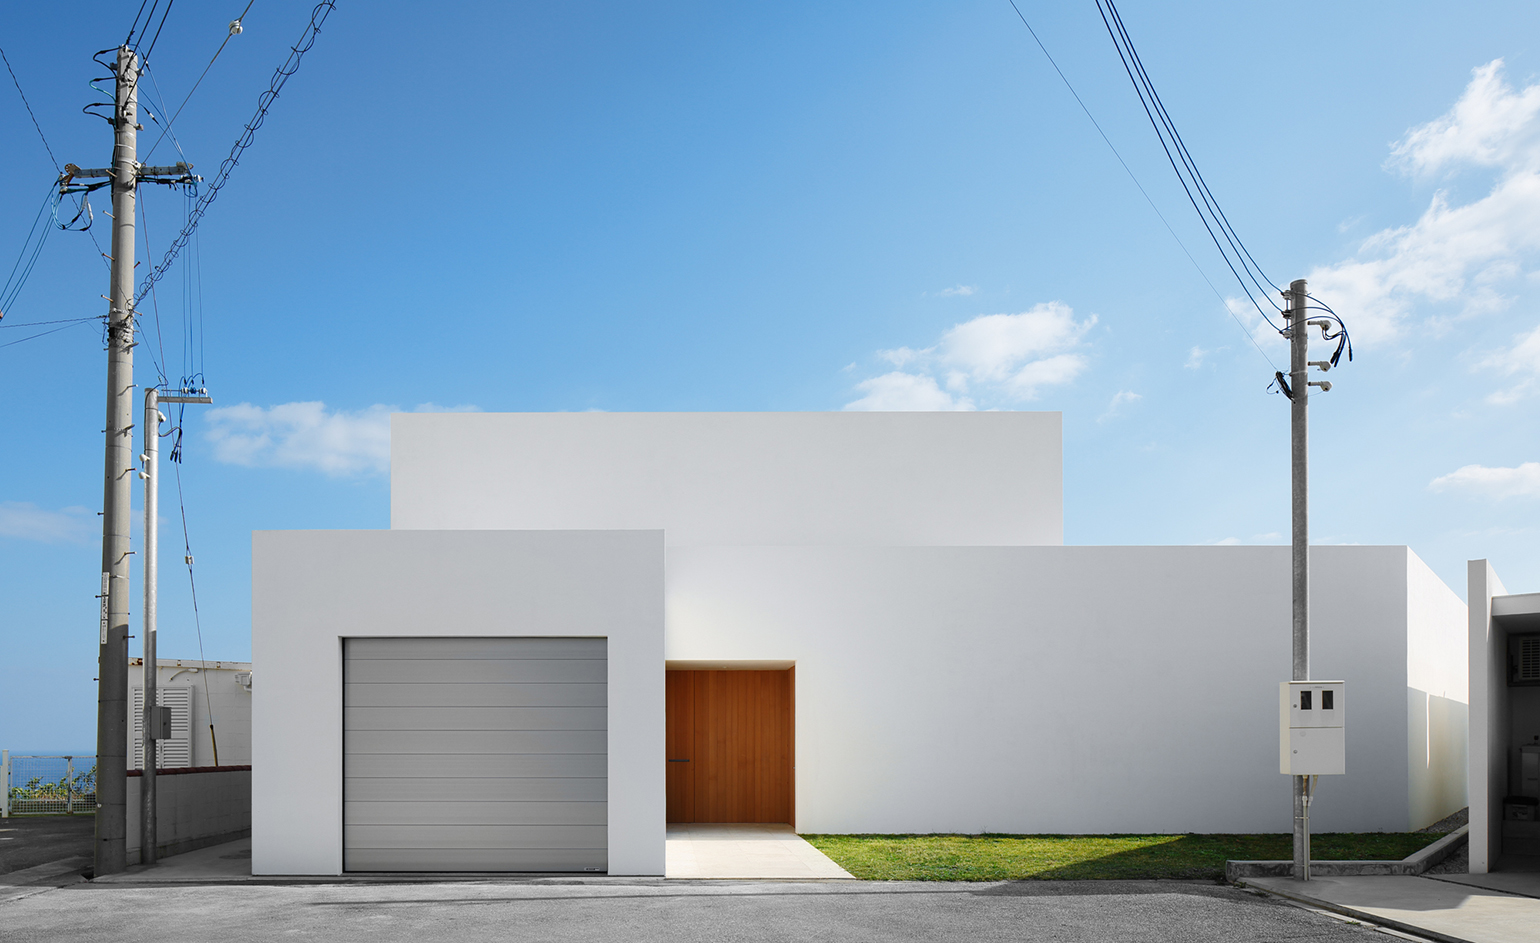 John pawson unveils minimalist japanese home in okinawa for Minimalist house wallpaper